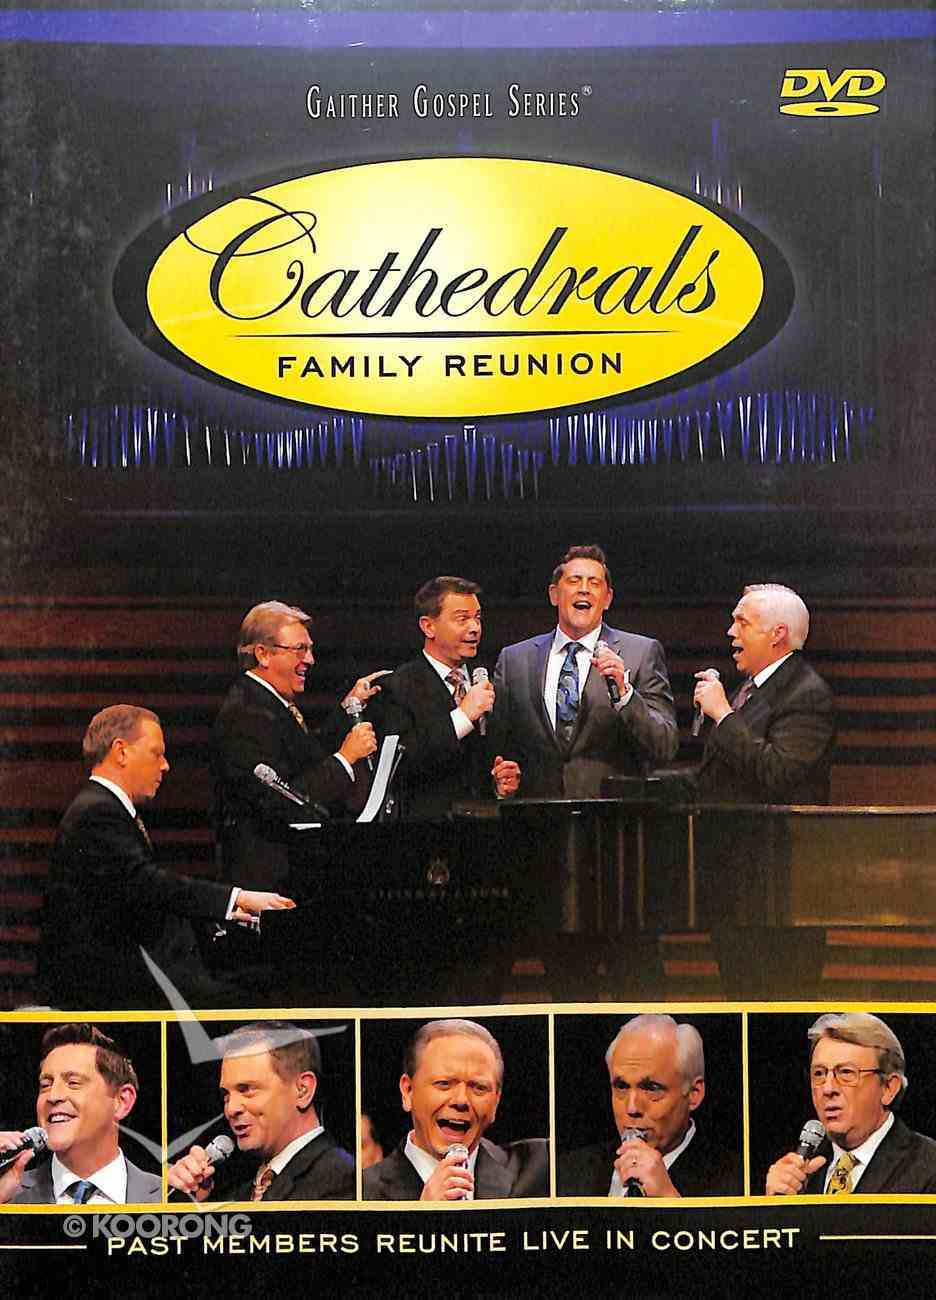 Cathedrals, the - Family Reunion (Gaither Gospel Series) DVD